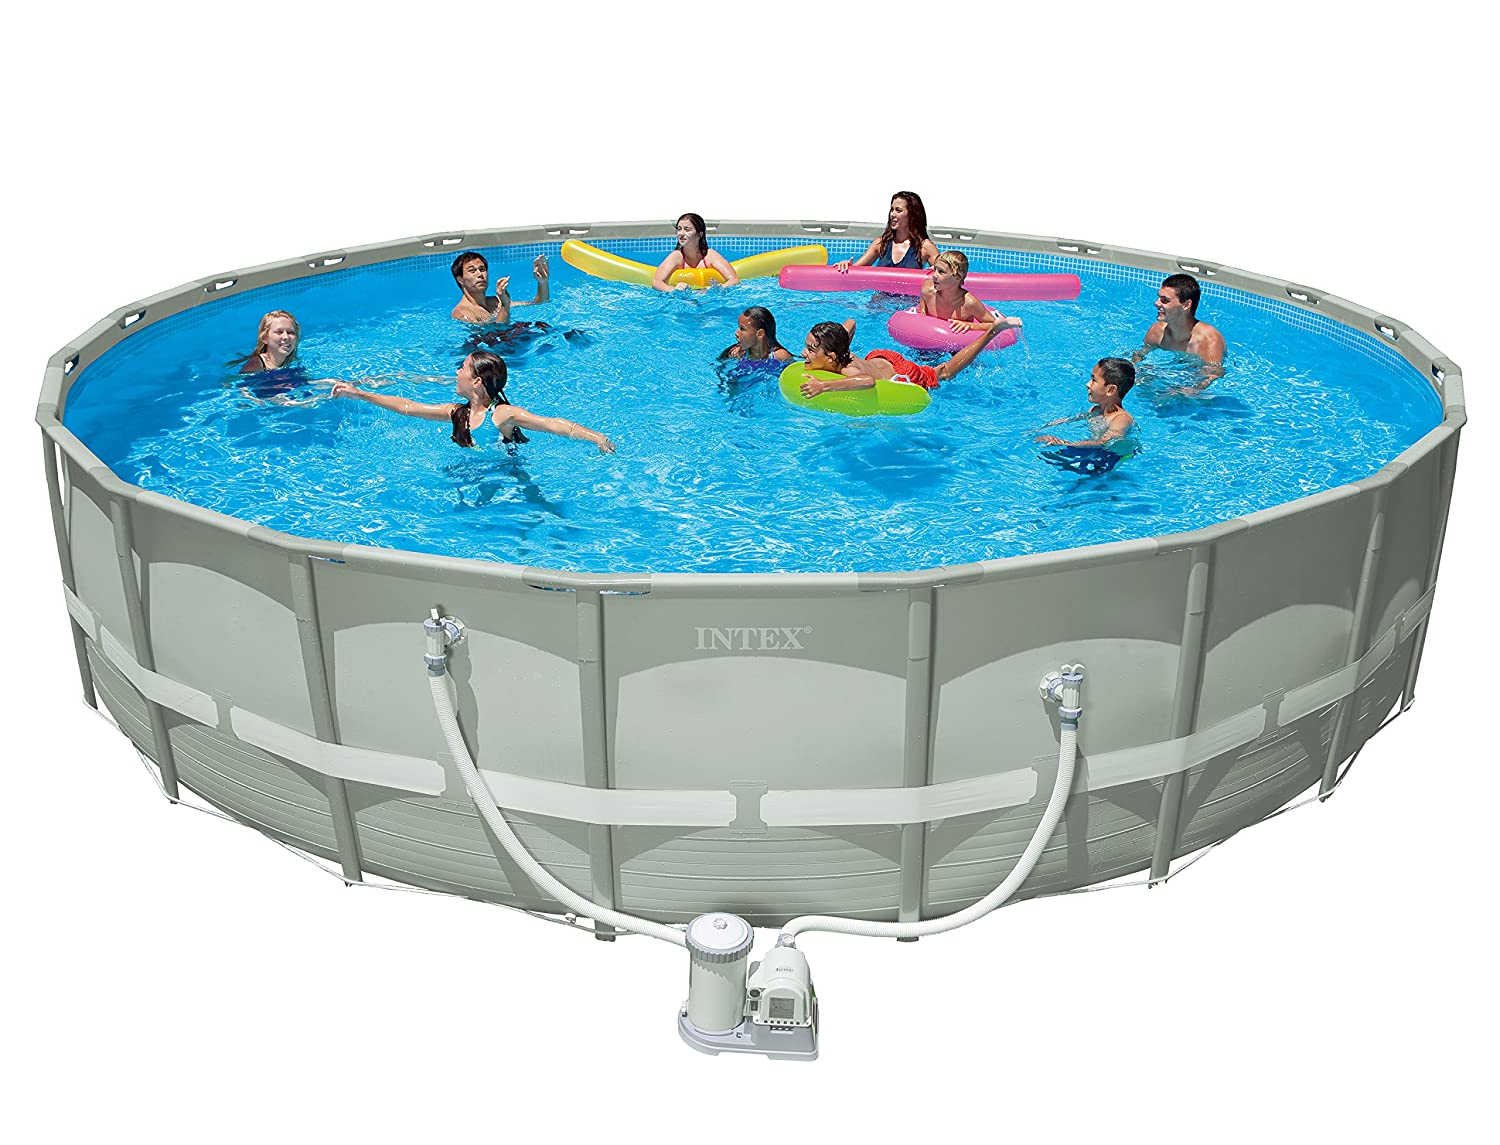 amazoncom intex 22 x 52 ultra frame pool set patio lawn garden